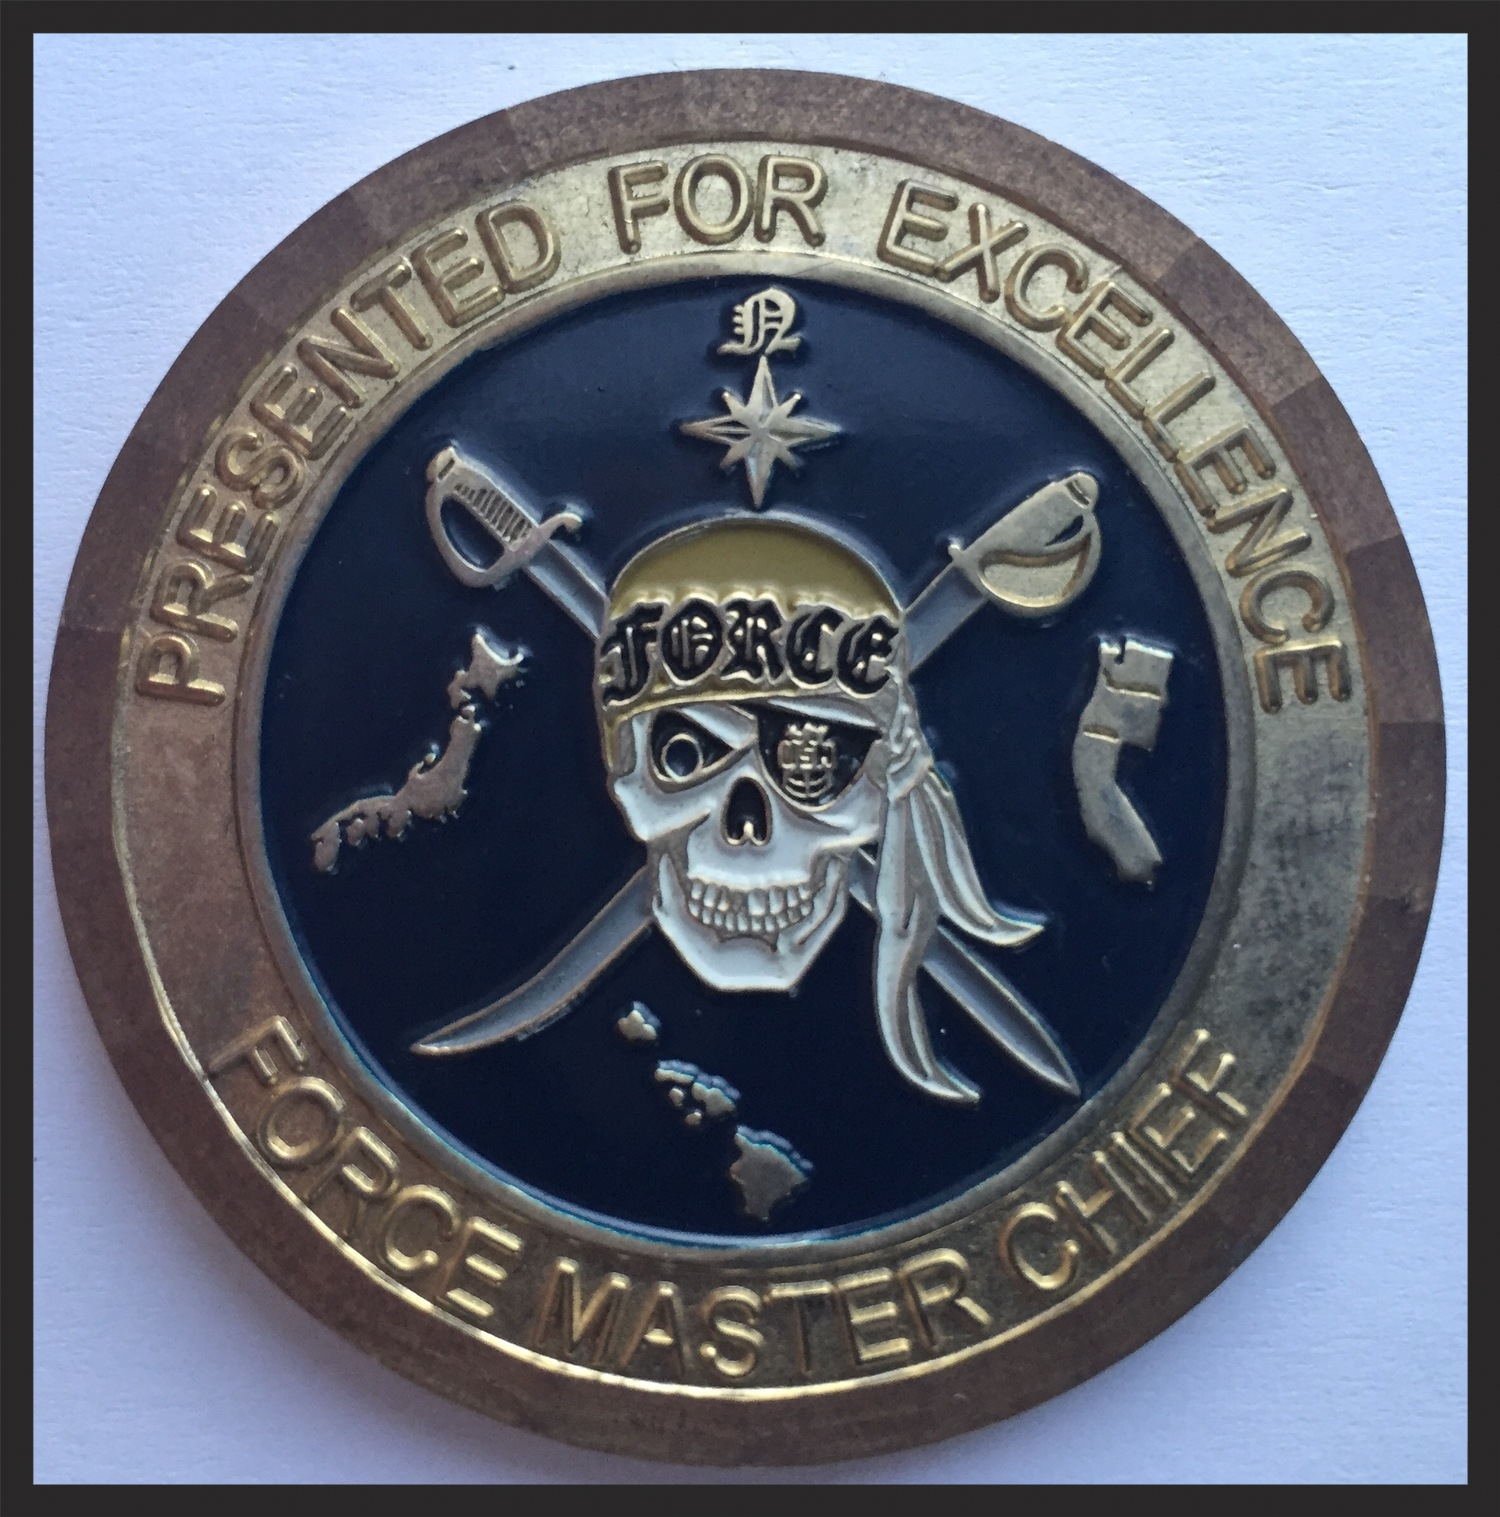 A Pirate motif, reminding us that at the end of the day, the U.S.Navy is just downright cool a lot of times.